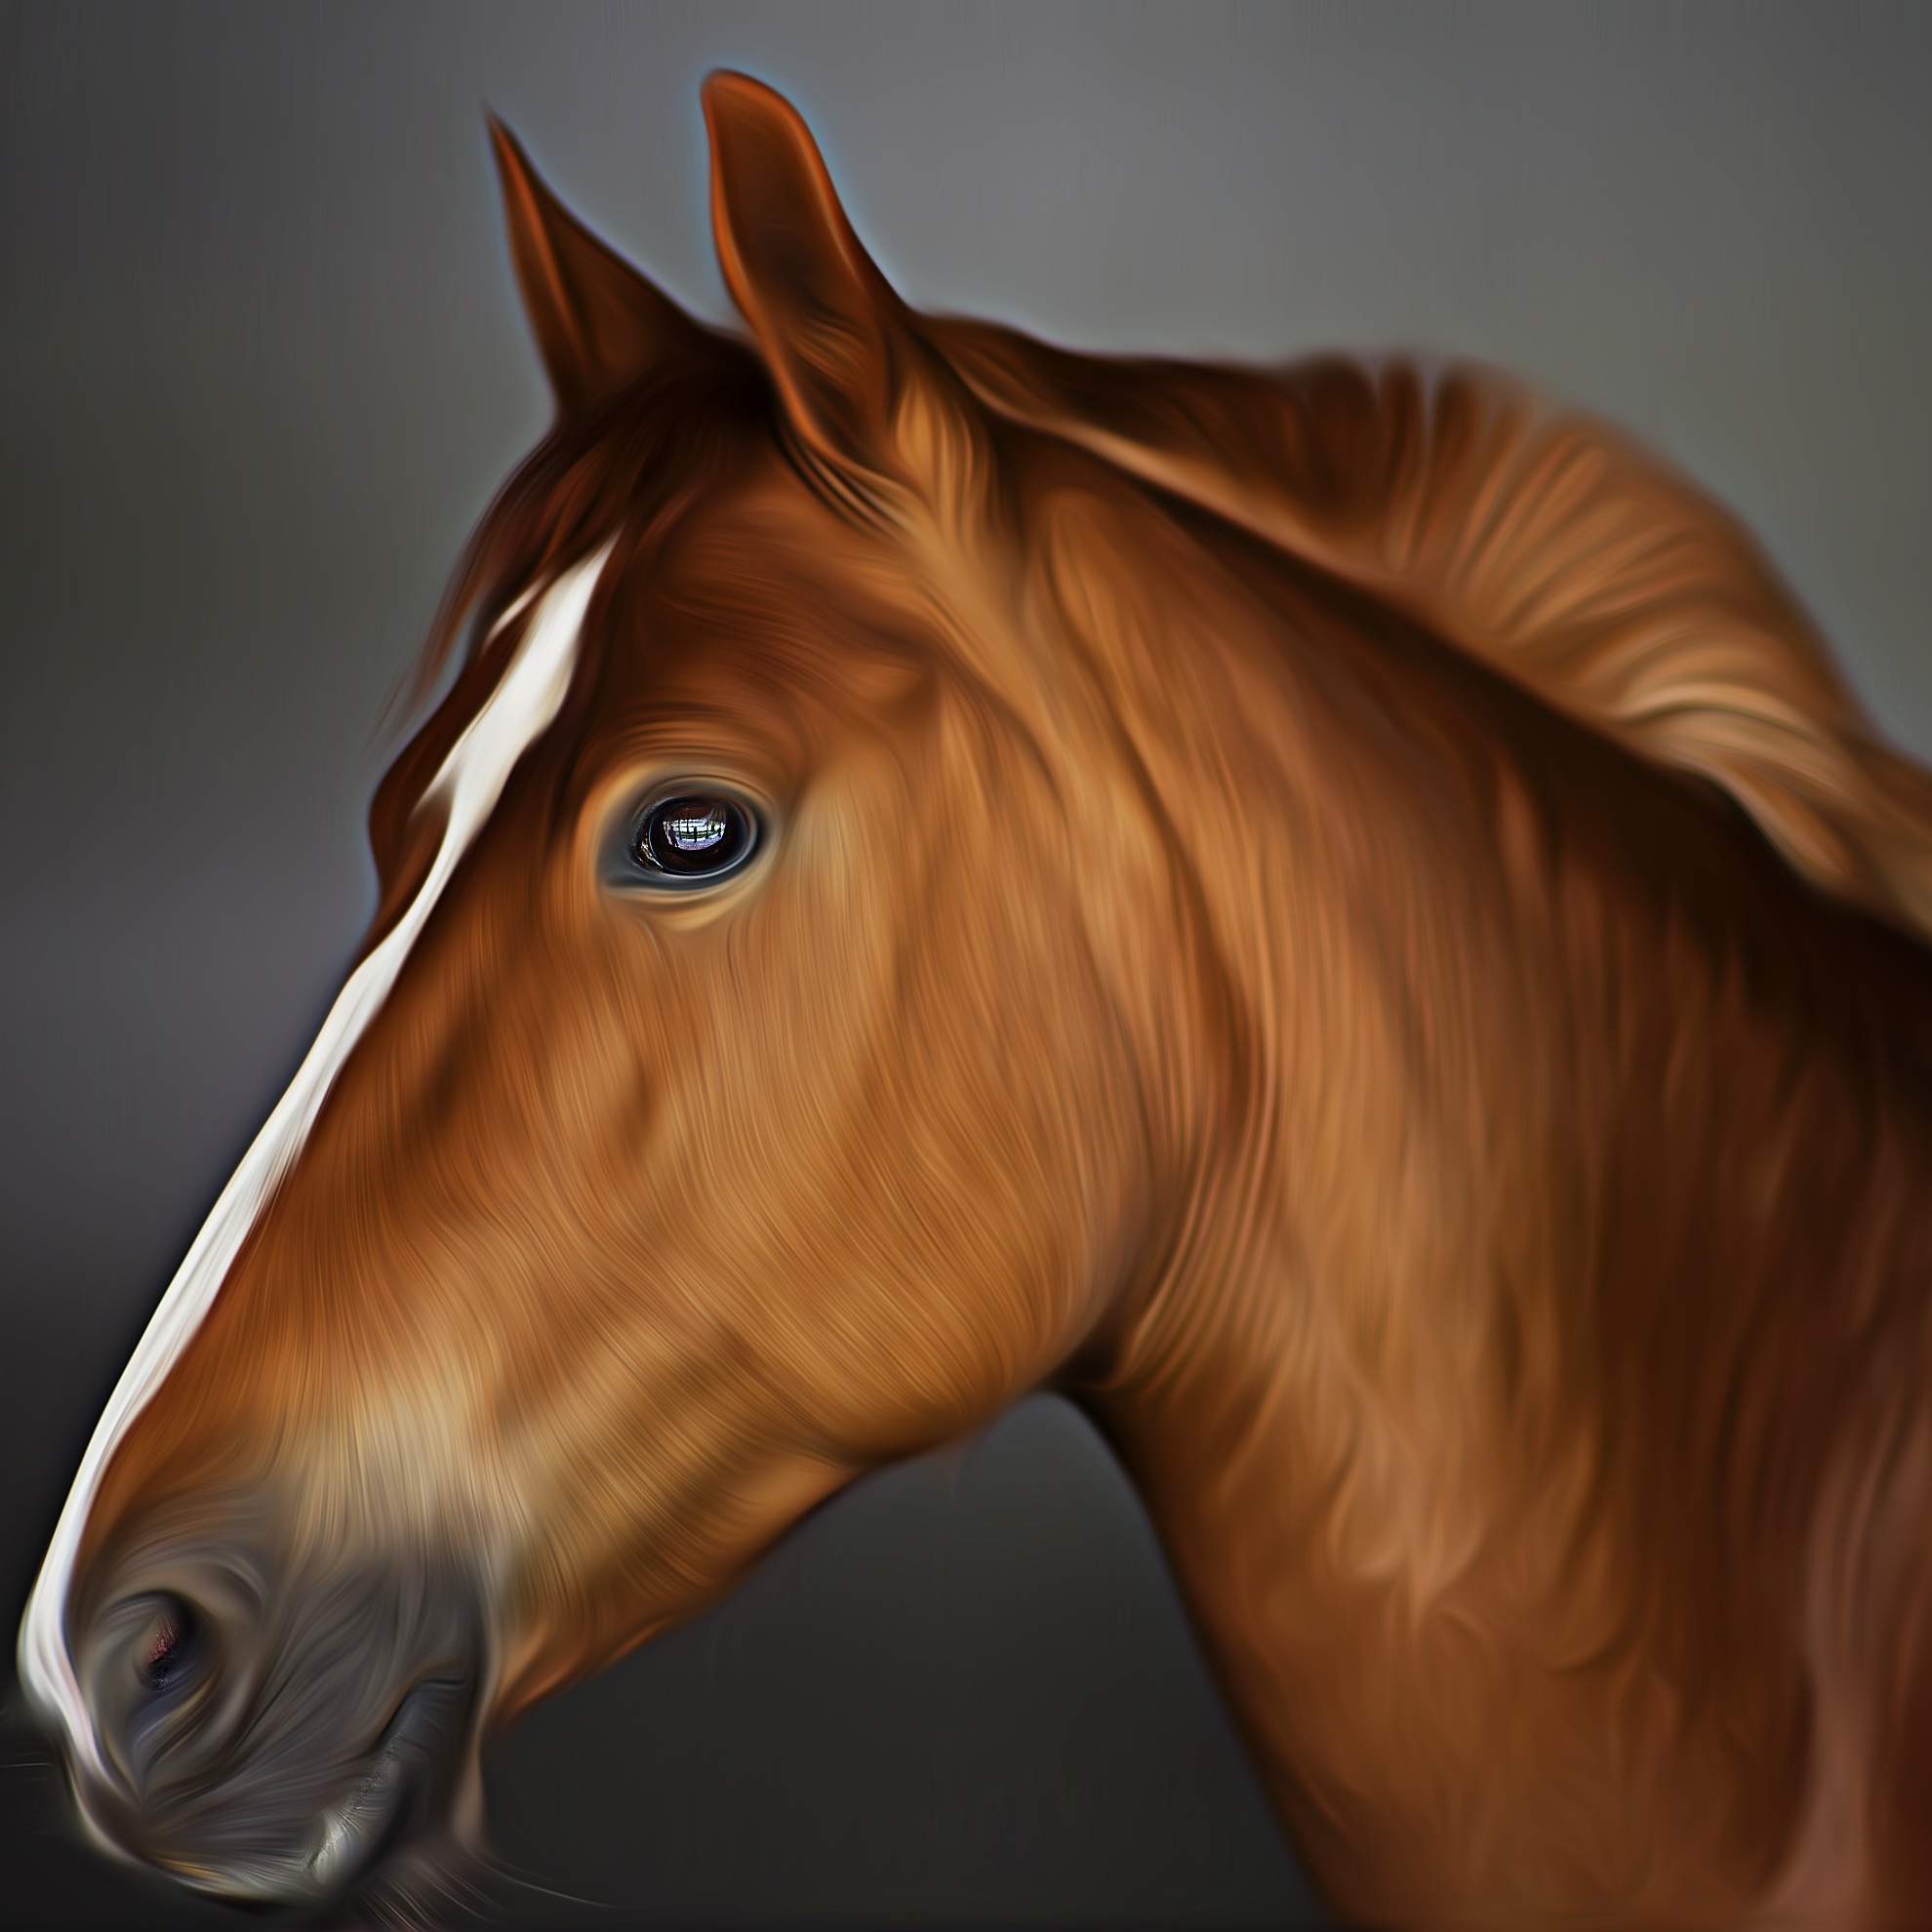 I will draw realistic art portrait of your pet or any animals